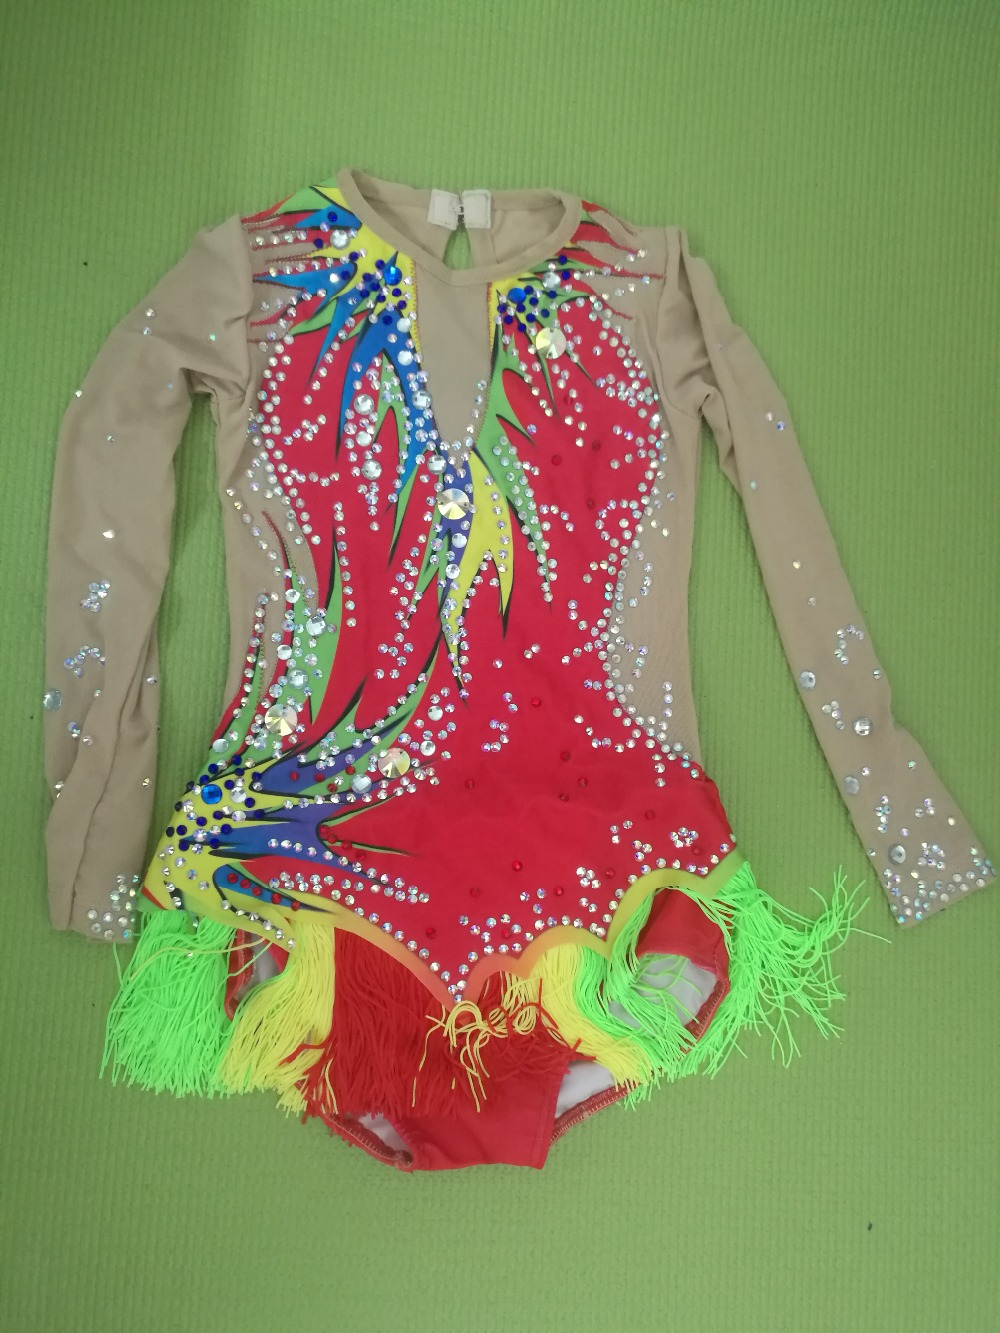 Professional Kids/Adult Cheerleader Uniform Boy/Girl Artistic Gymnastics Competition Uniform Leotard Custom Size